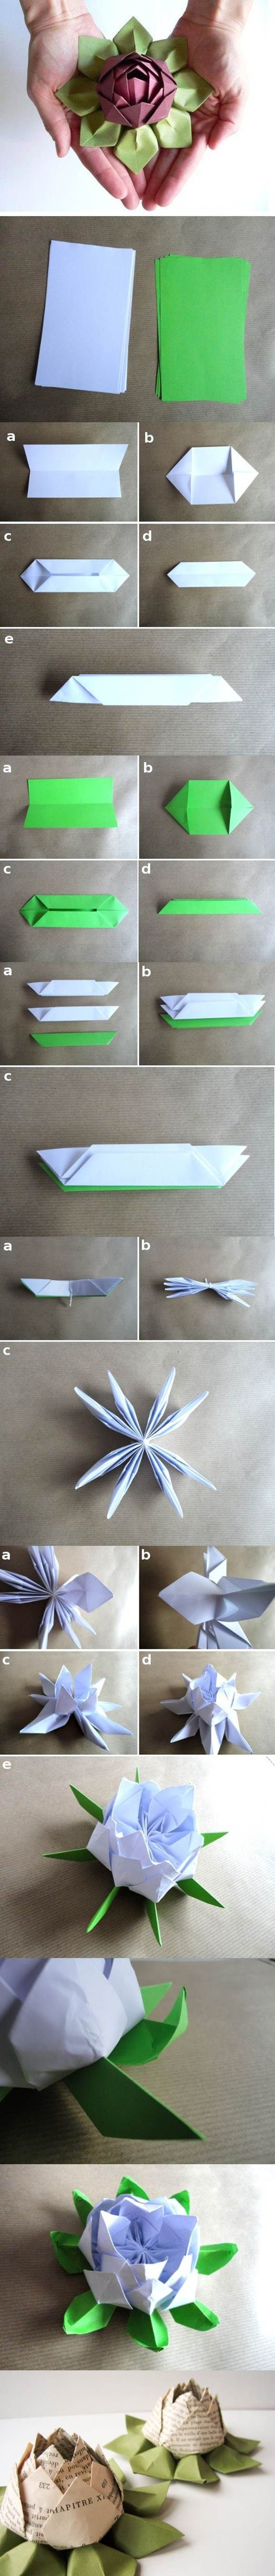 Lotus Leaf Napkin Folding : 1000+ ideas about Paper Lotus on Pinterest  Origami, Origami Rose and